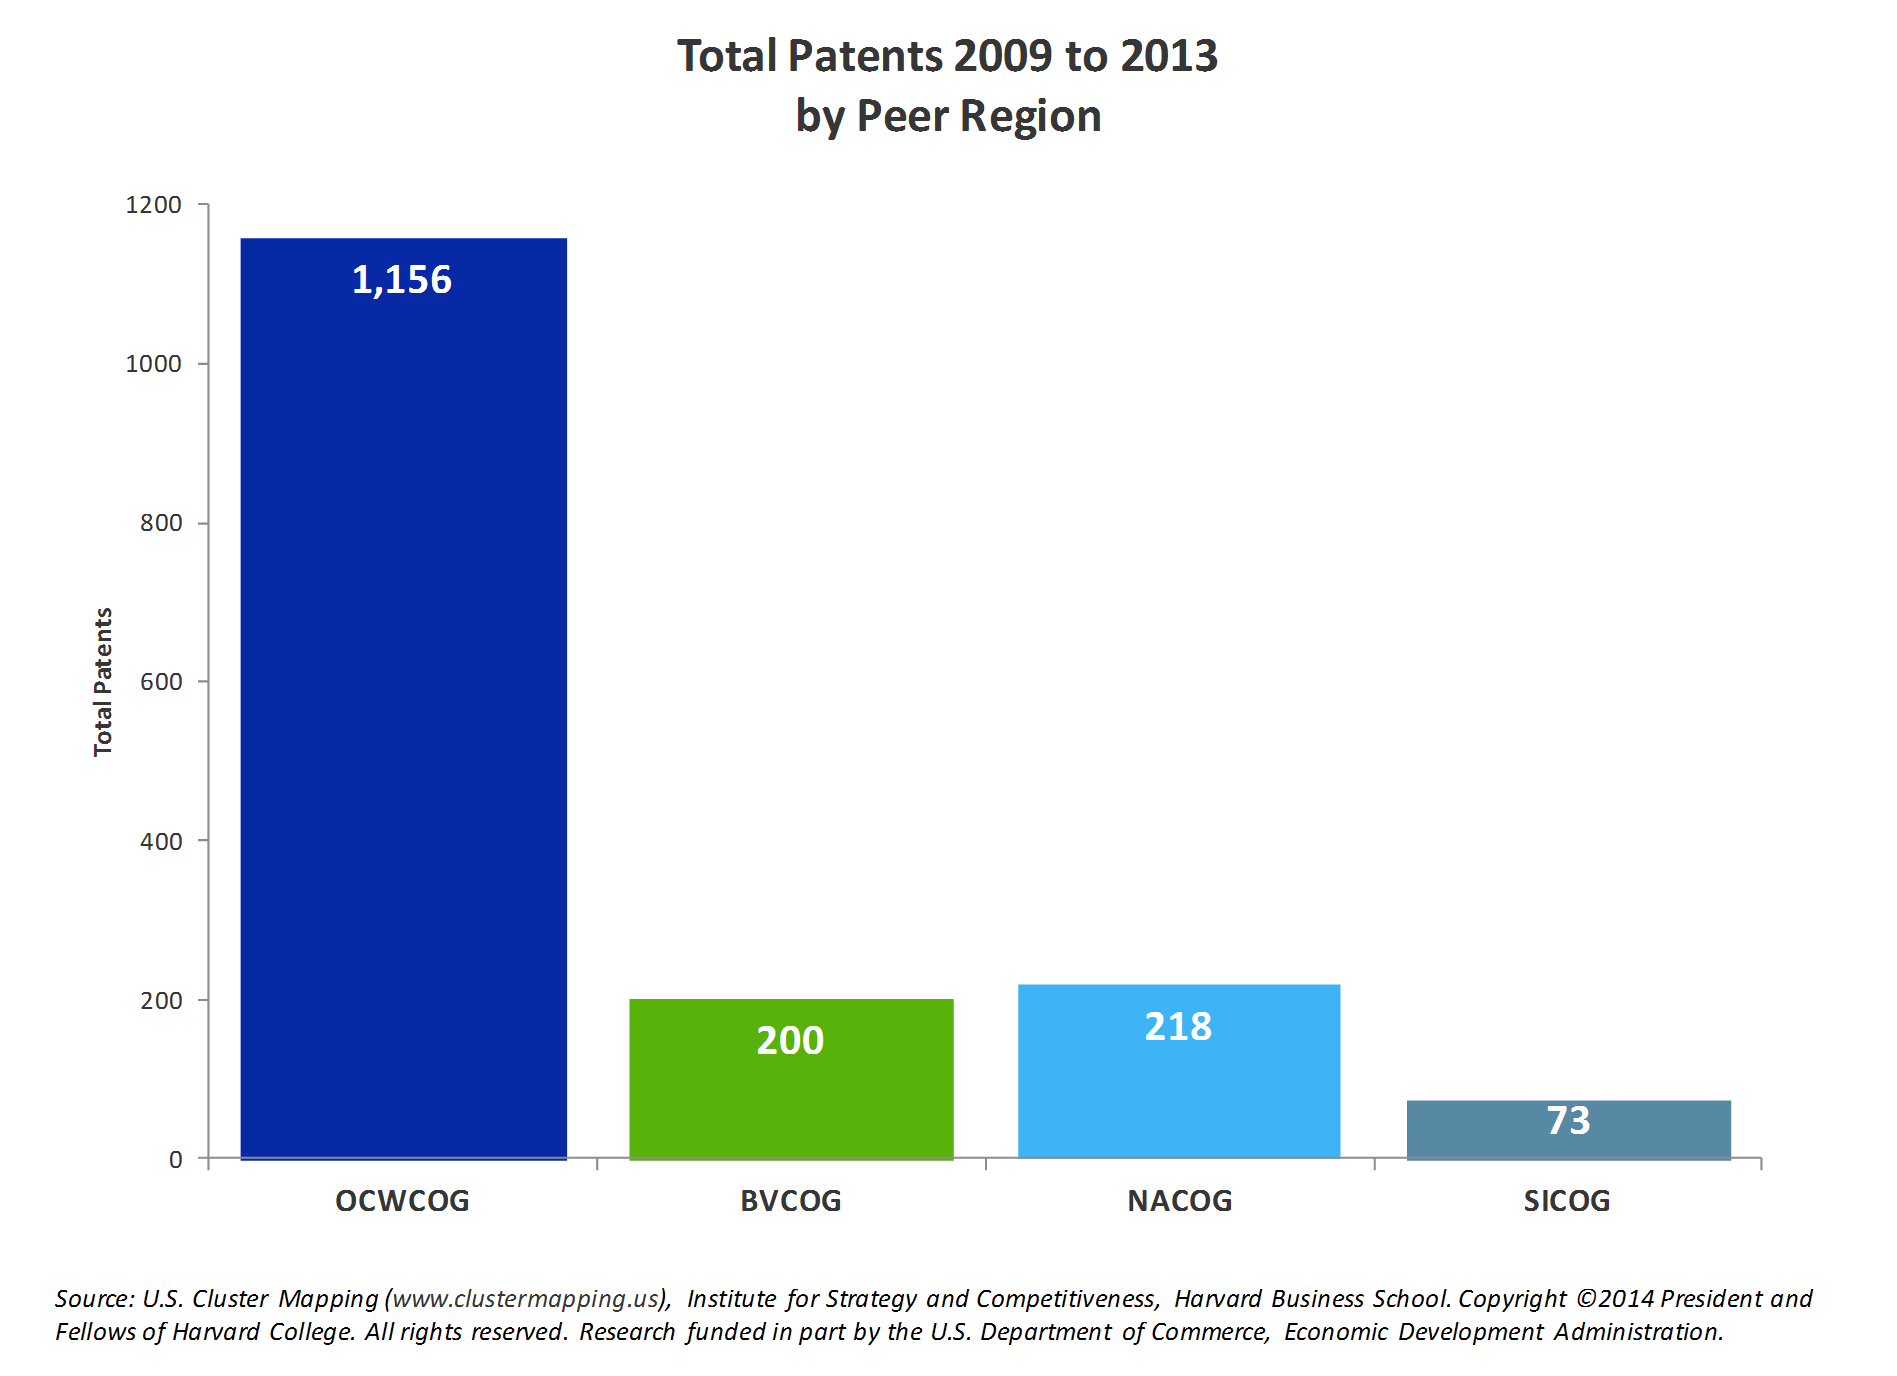 Total Patents 2009-2013 by Peer Region